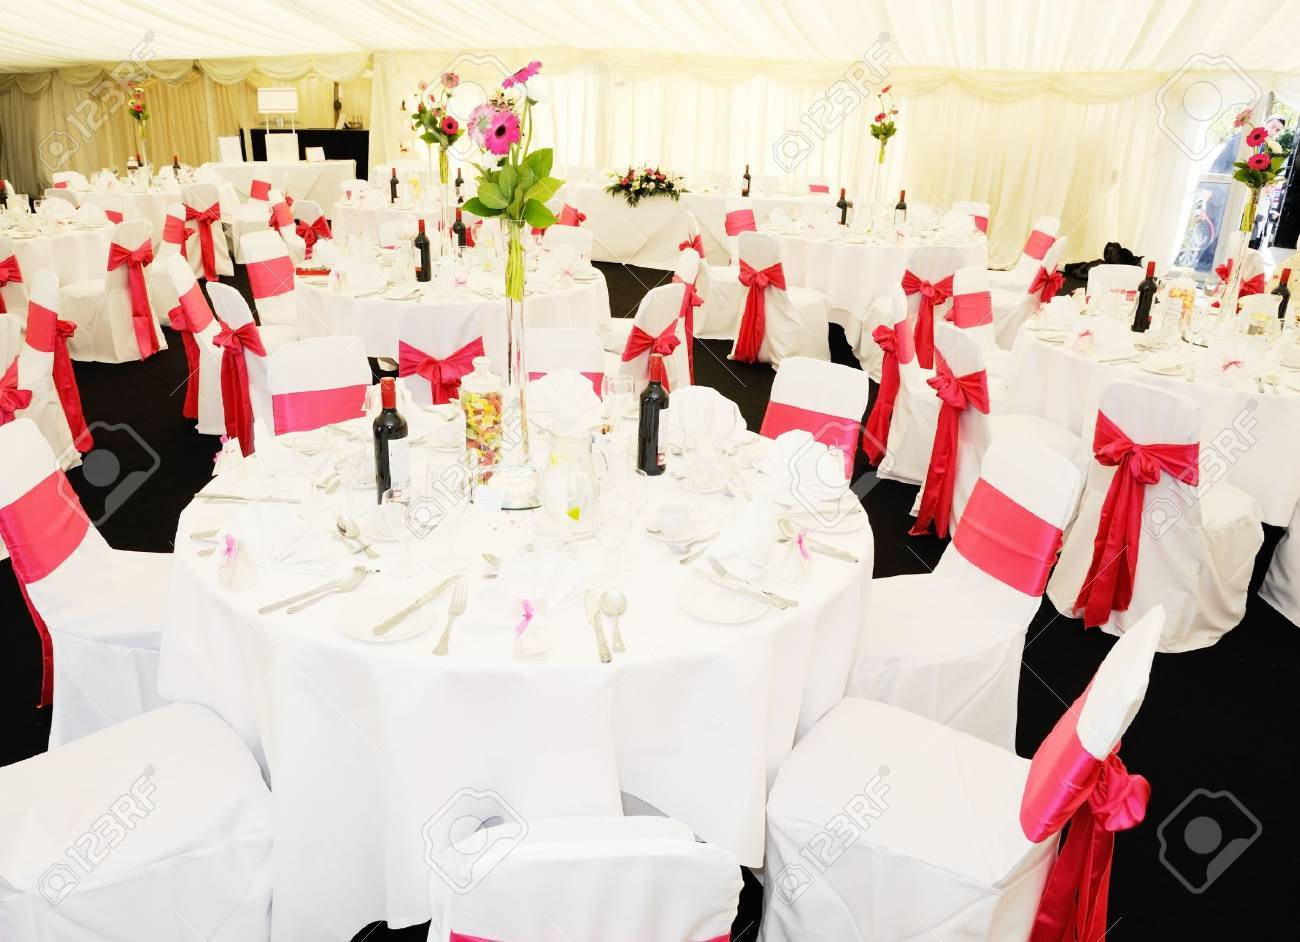 Decoration Chapiteau De Reception Wedding Reception Inside Marquee With Flowers And Pink Ribbon